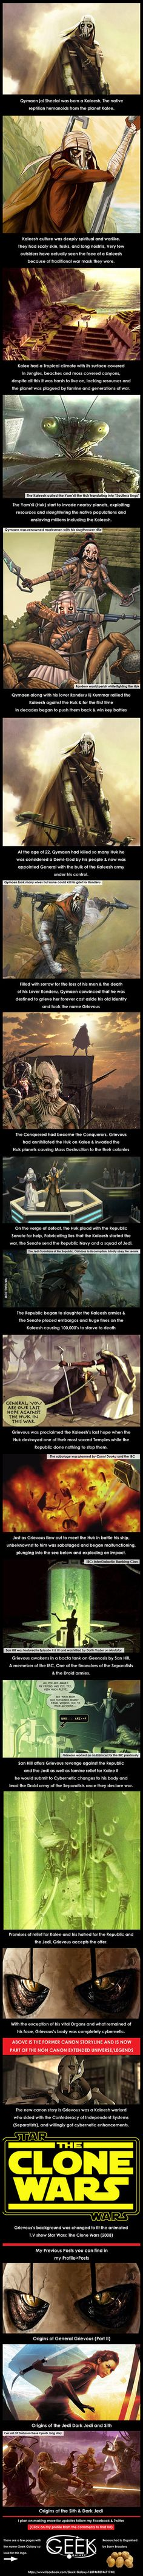 Origins of General Grievous (Part I) Star Wars History. - 9GAG